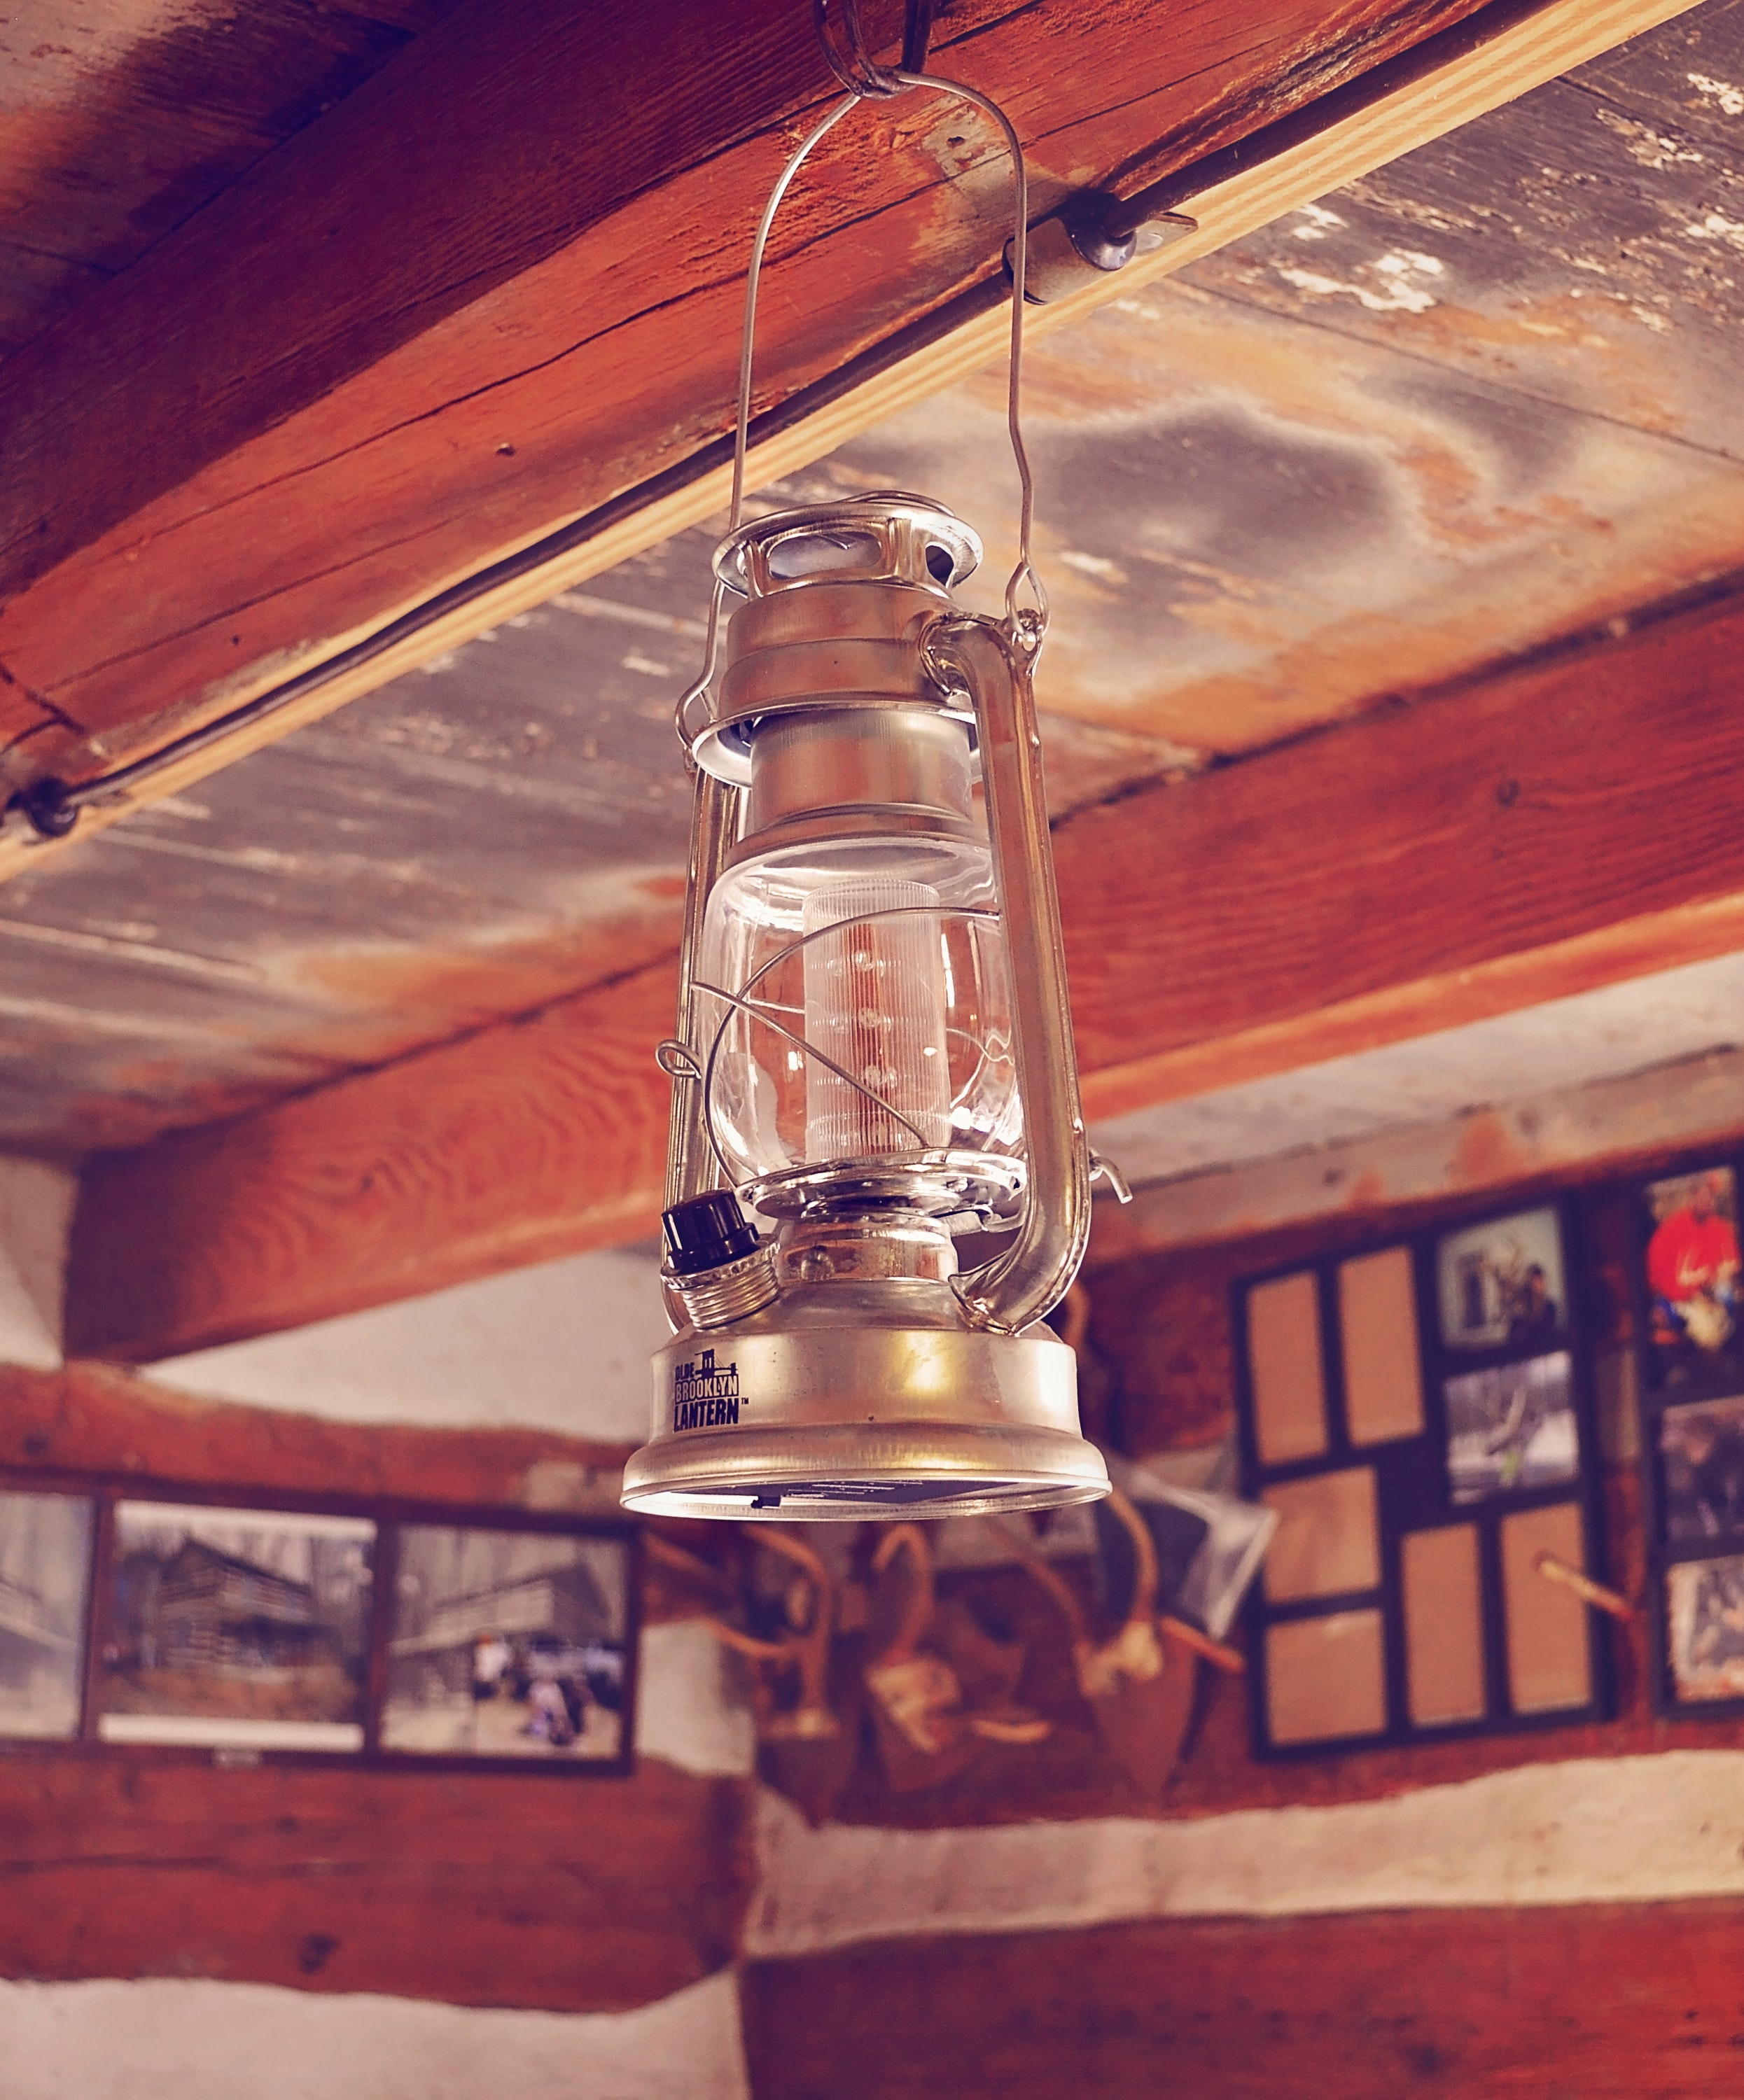 An old, rustic lantern hangs in a wooden lodge with photos on the walls